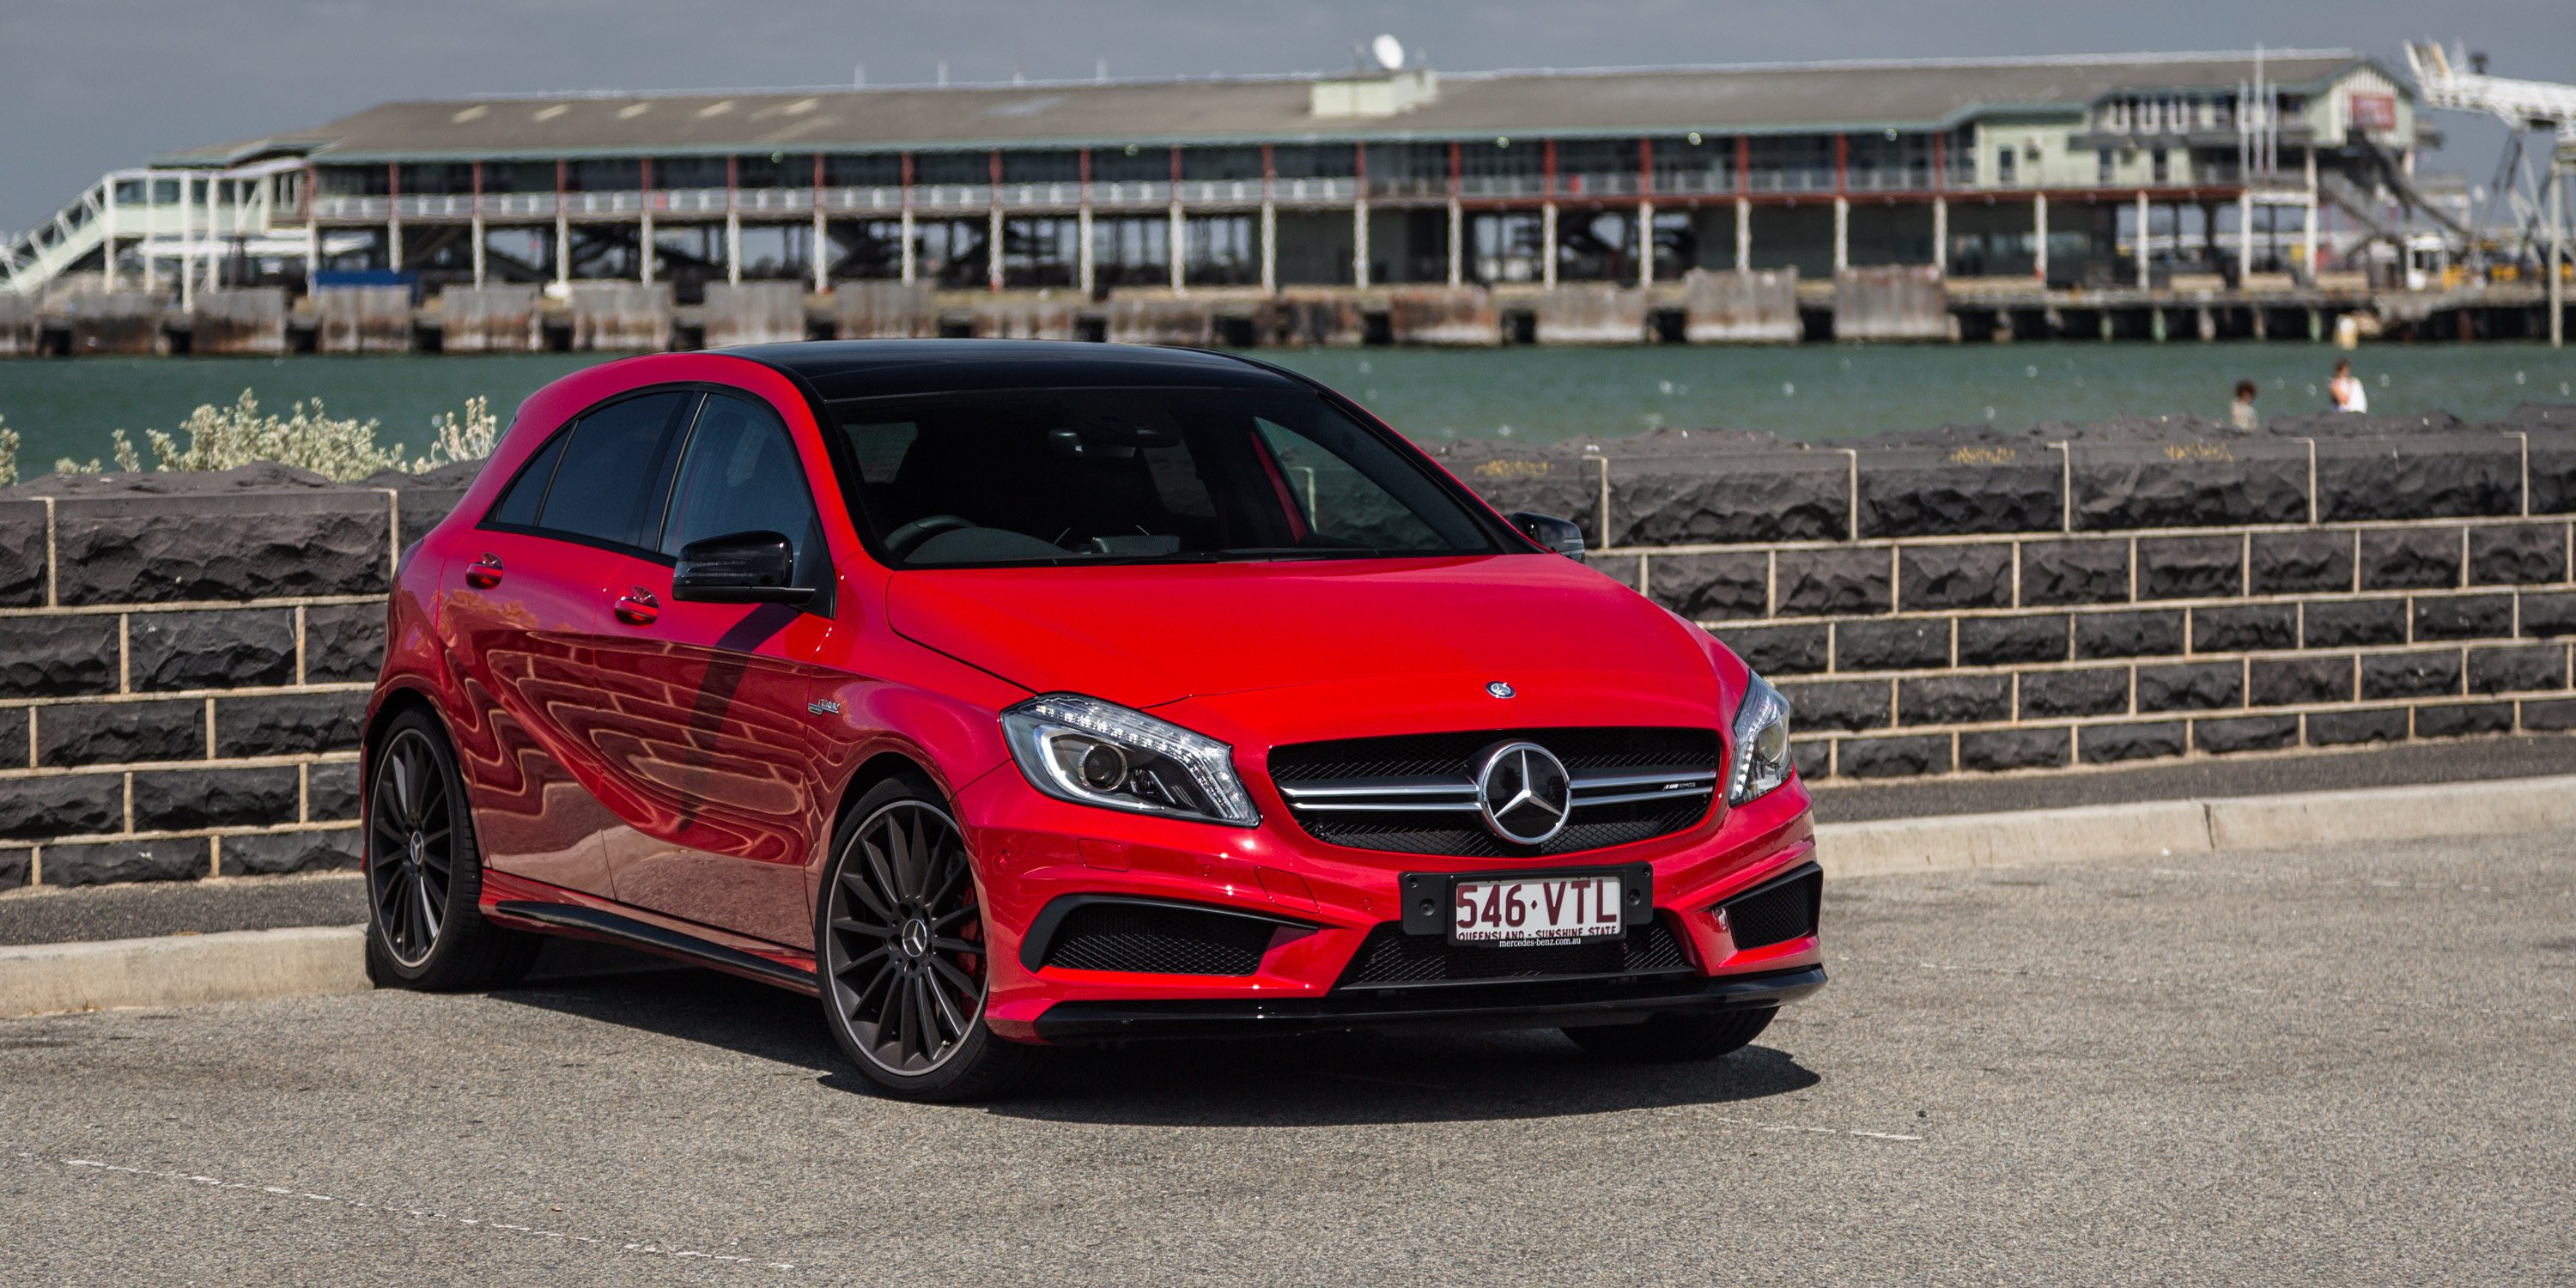 2016 mercedes-amg a45 v 2015 mercedes-benz a45 amg  what has changed